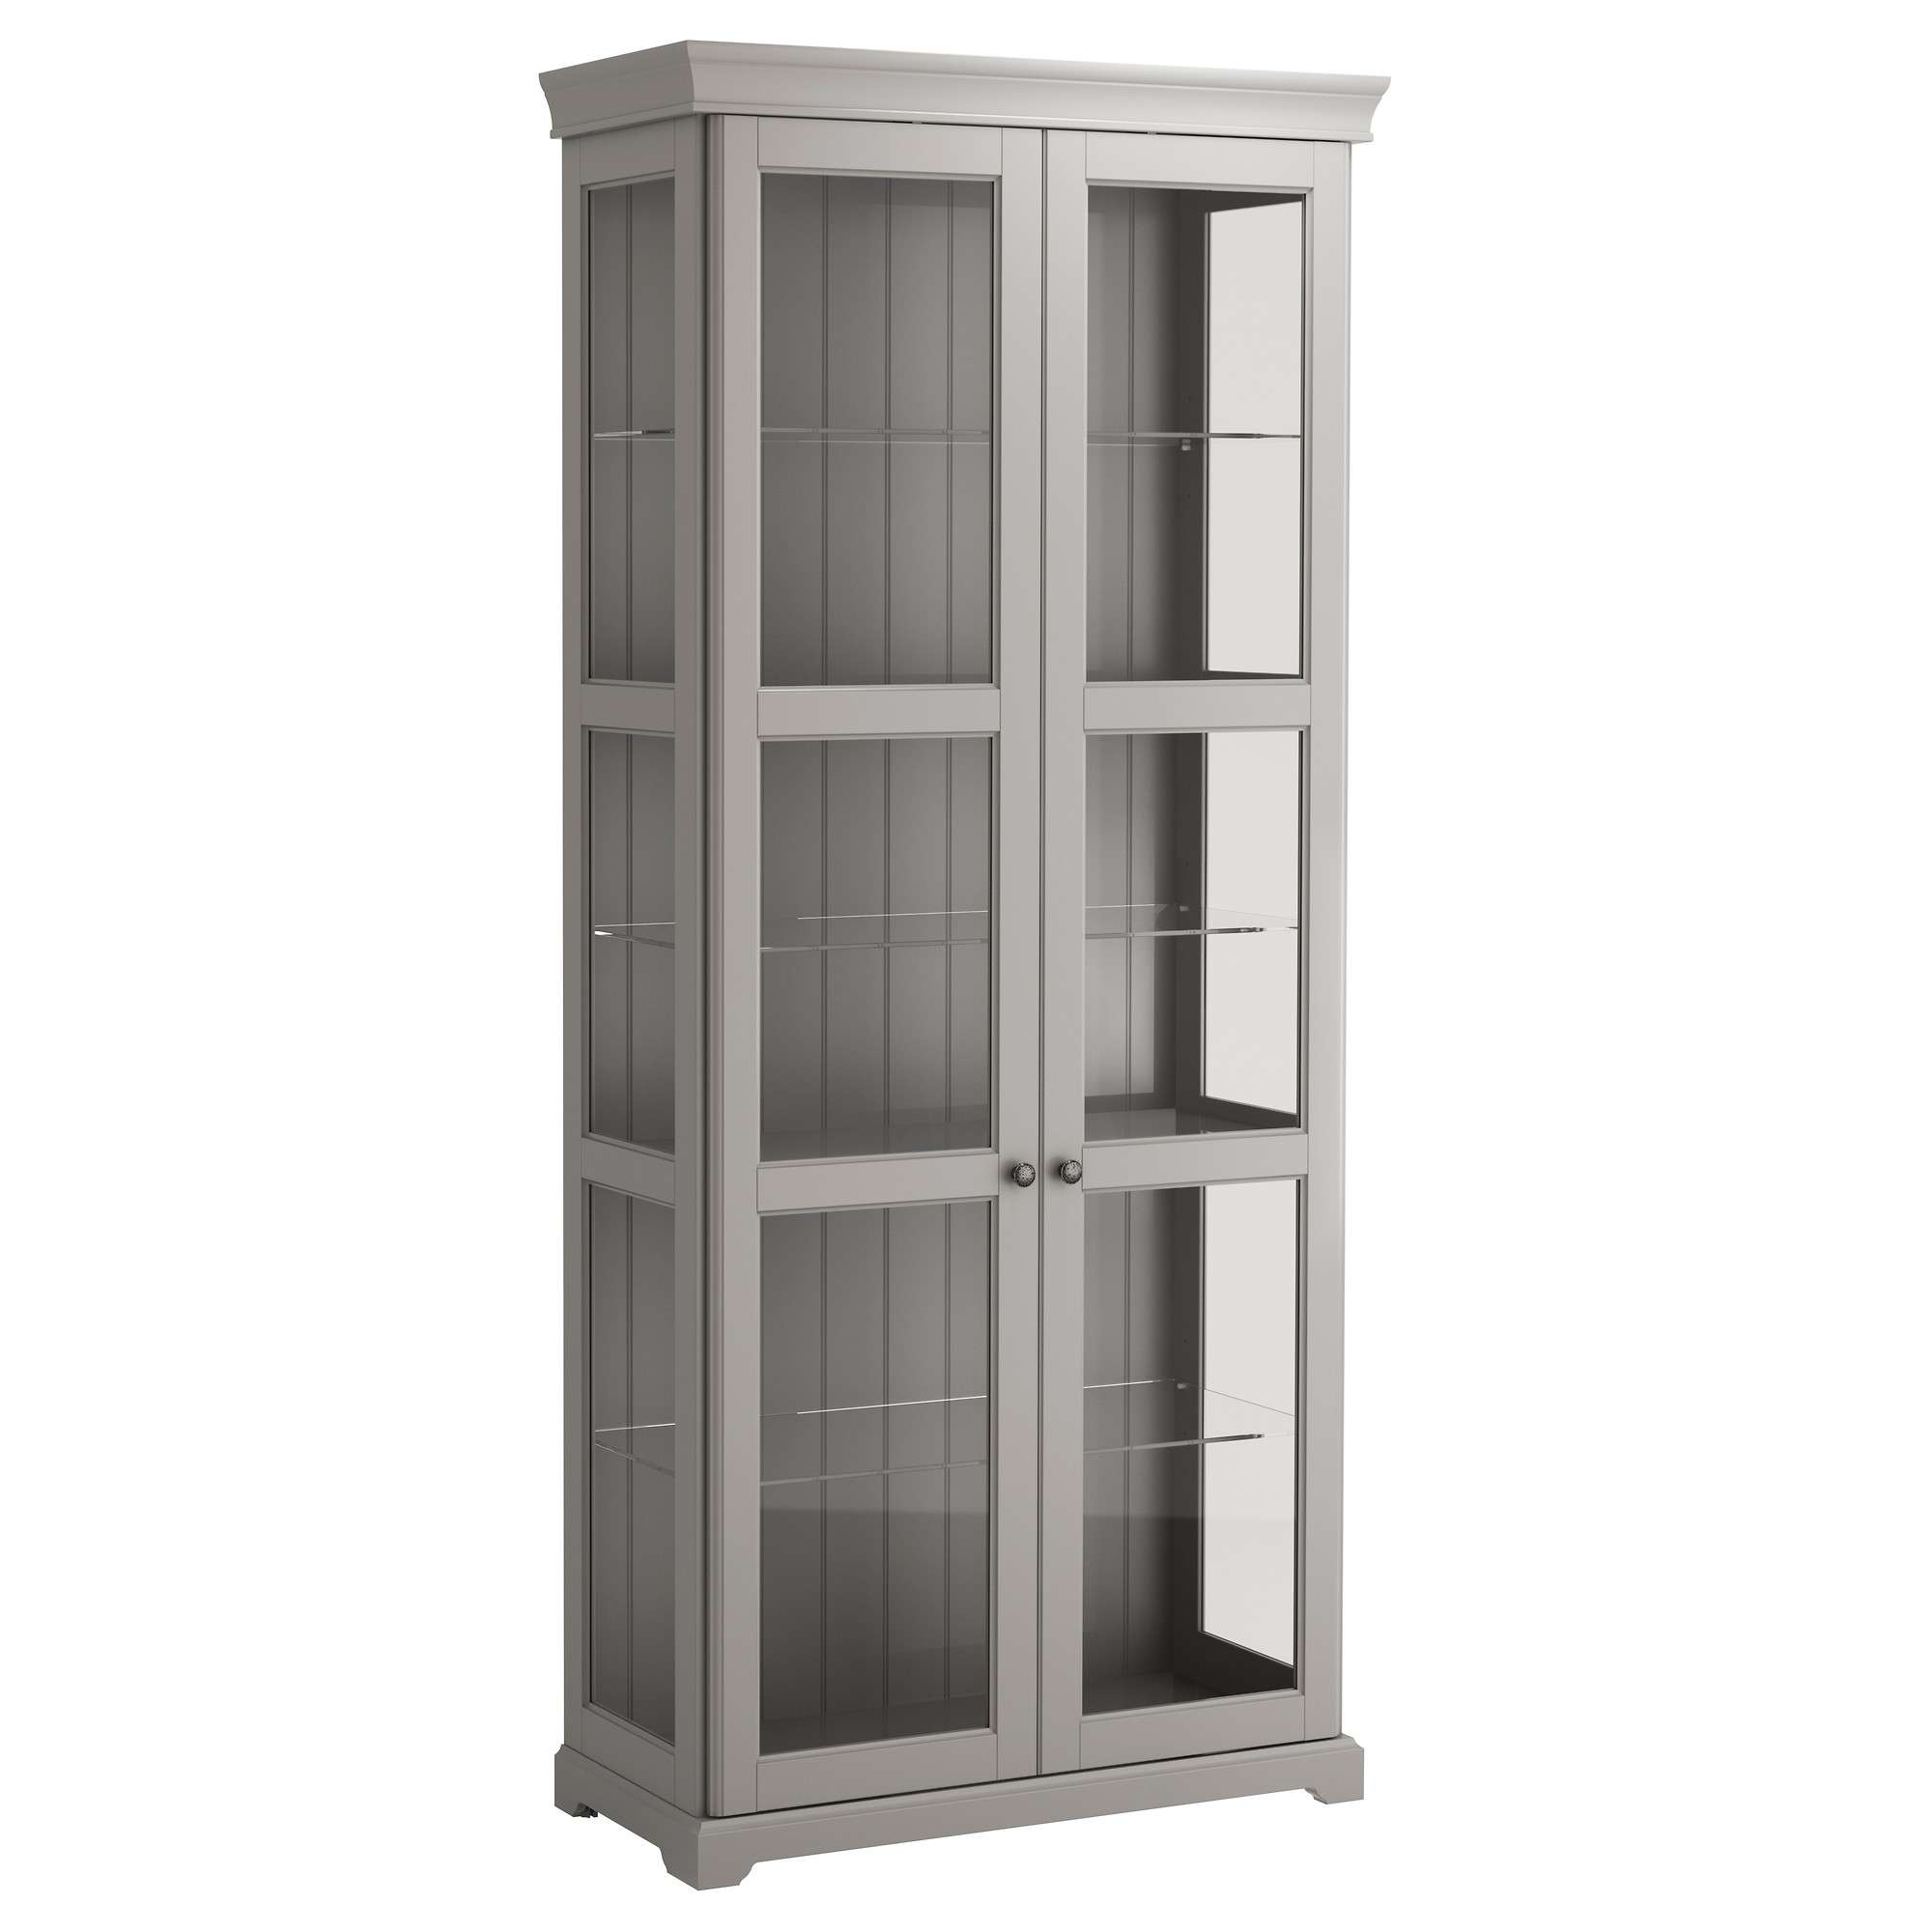 Liatorp Glass Door Cabinet Grey 96x214 Cm – Ikea With Regard To White Sideboards With Glass Doors (View 18 of 20)